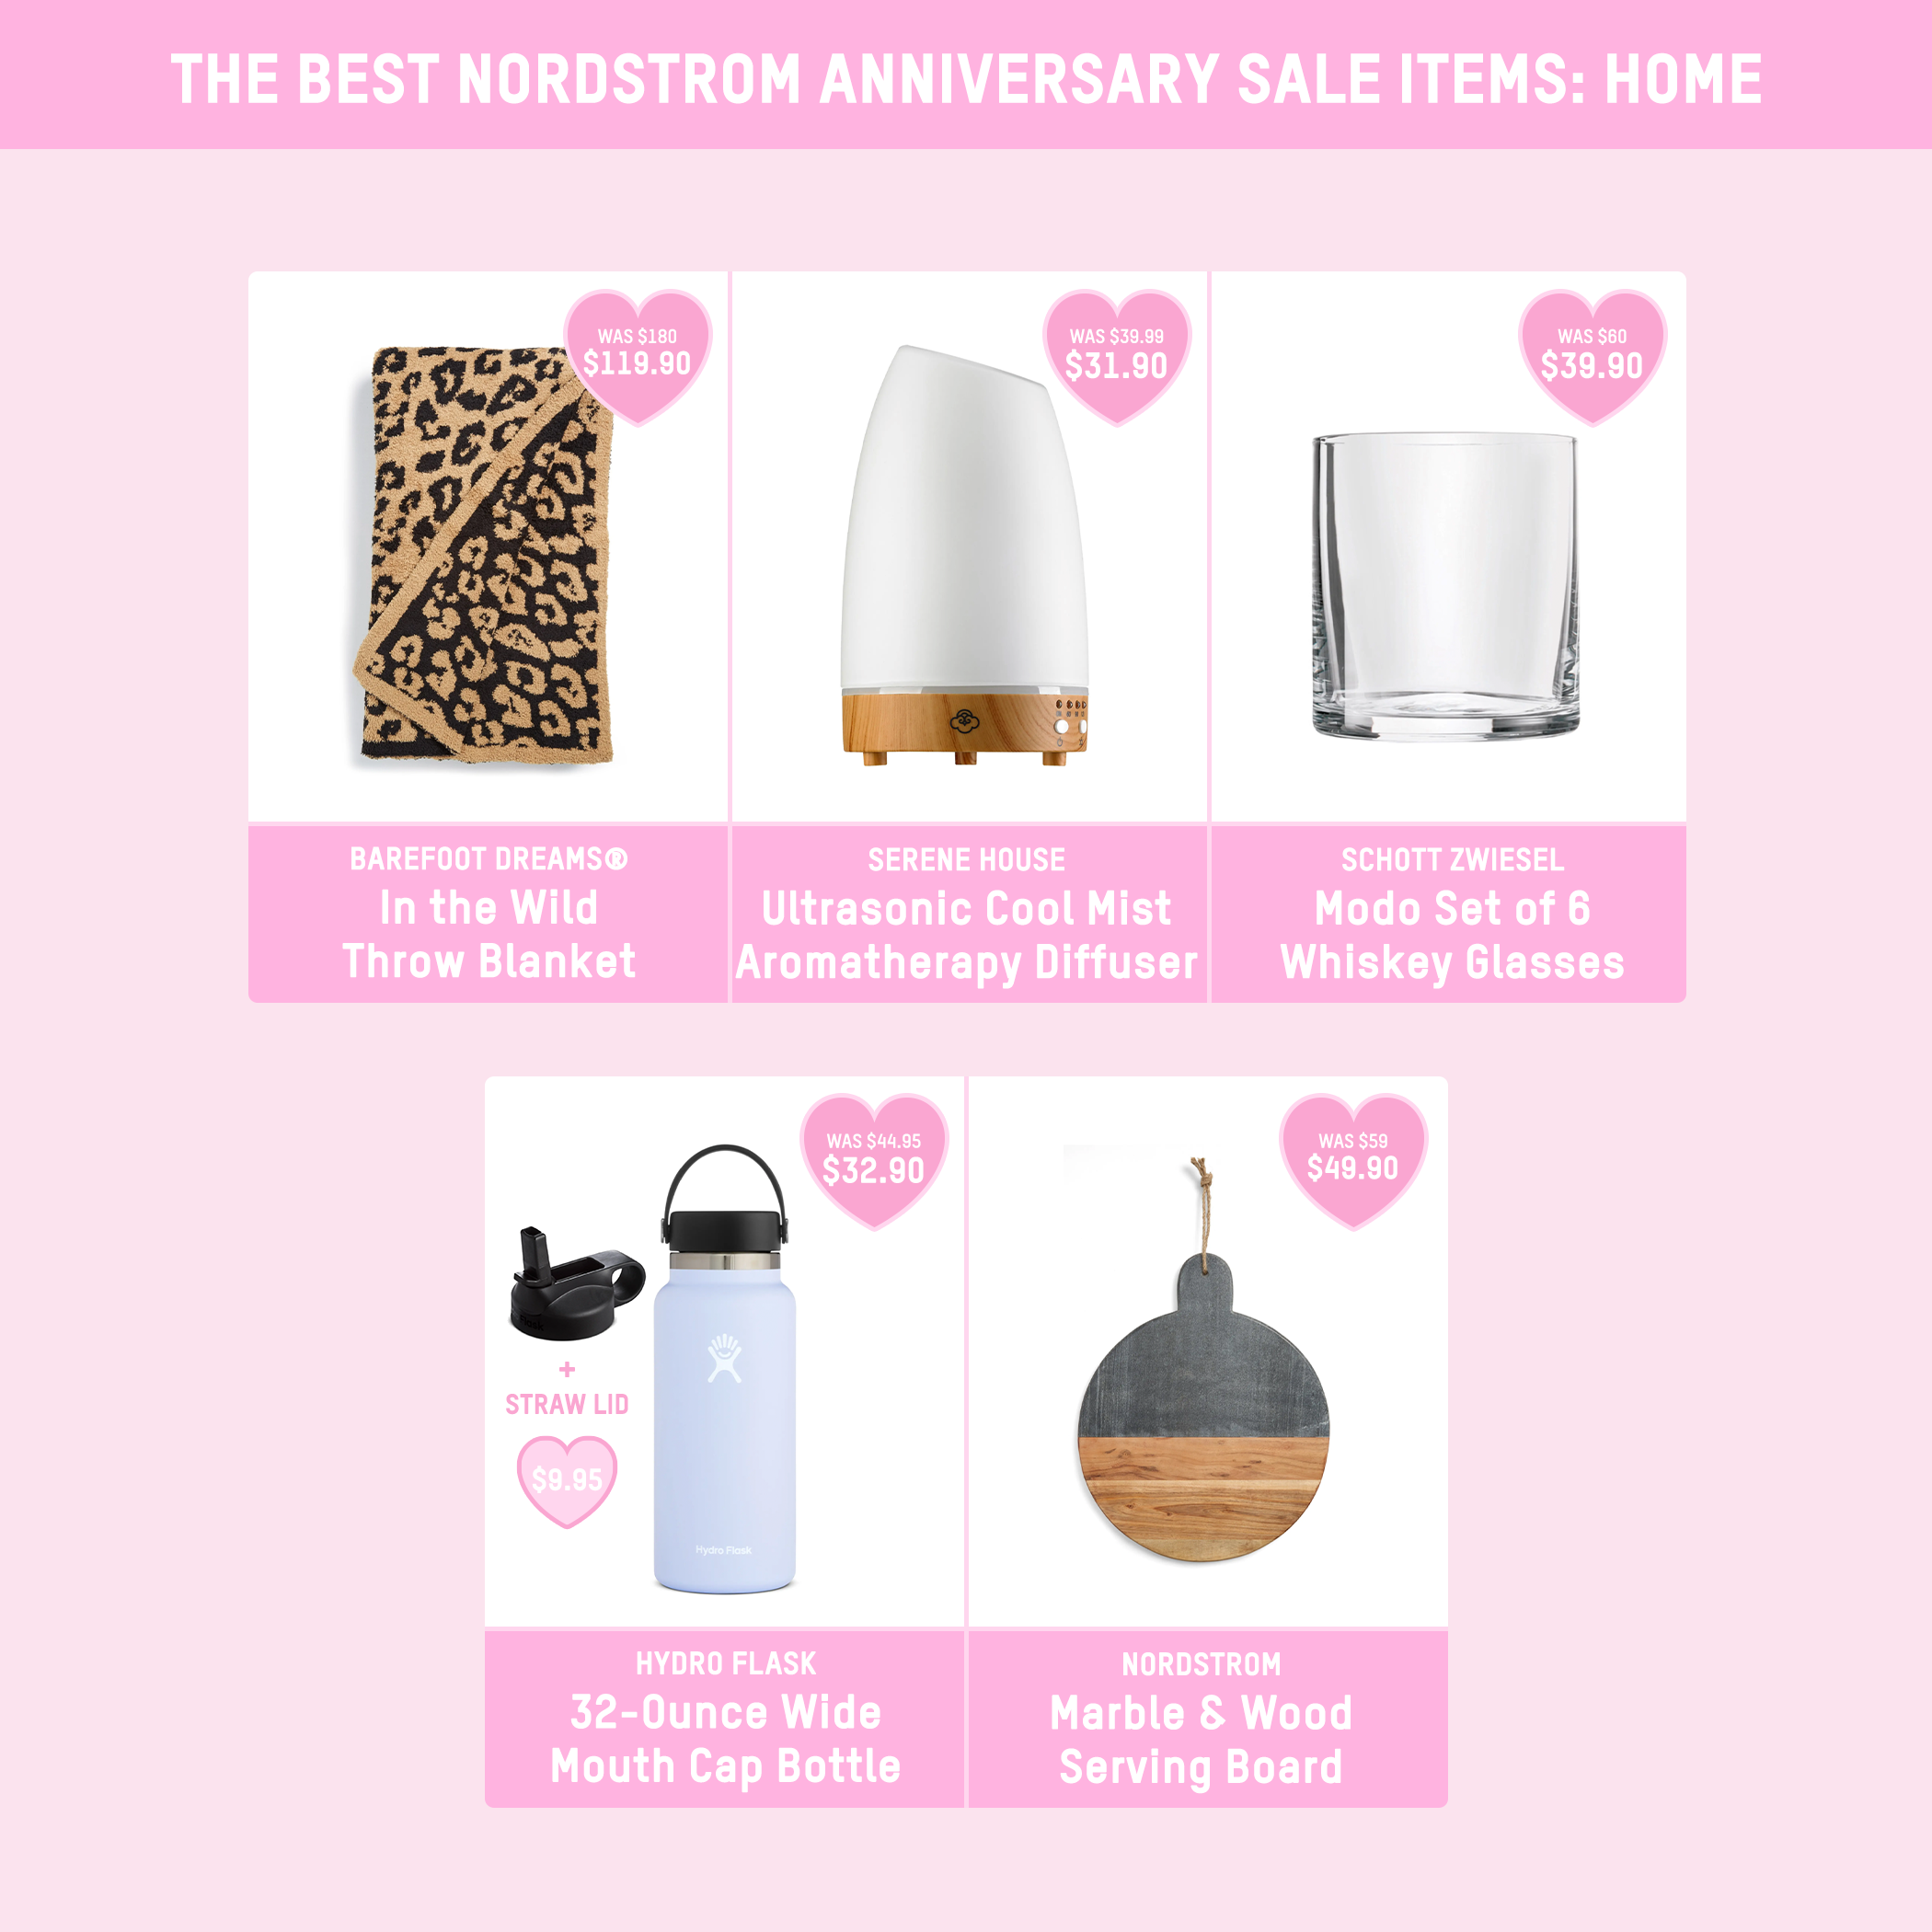 Home items on sale at Nordstrom